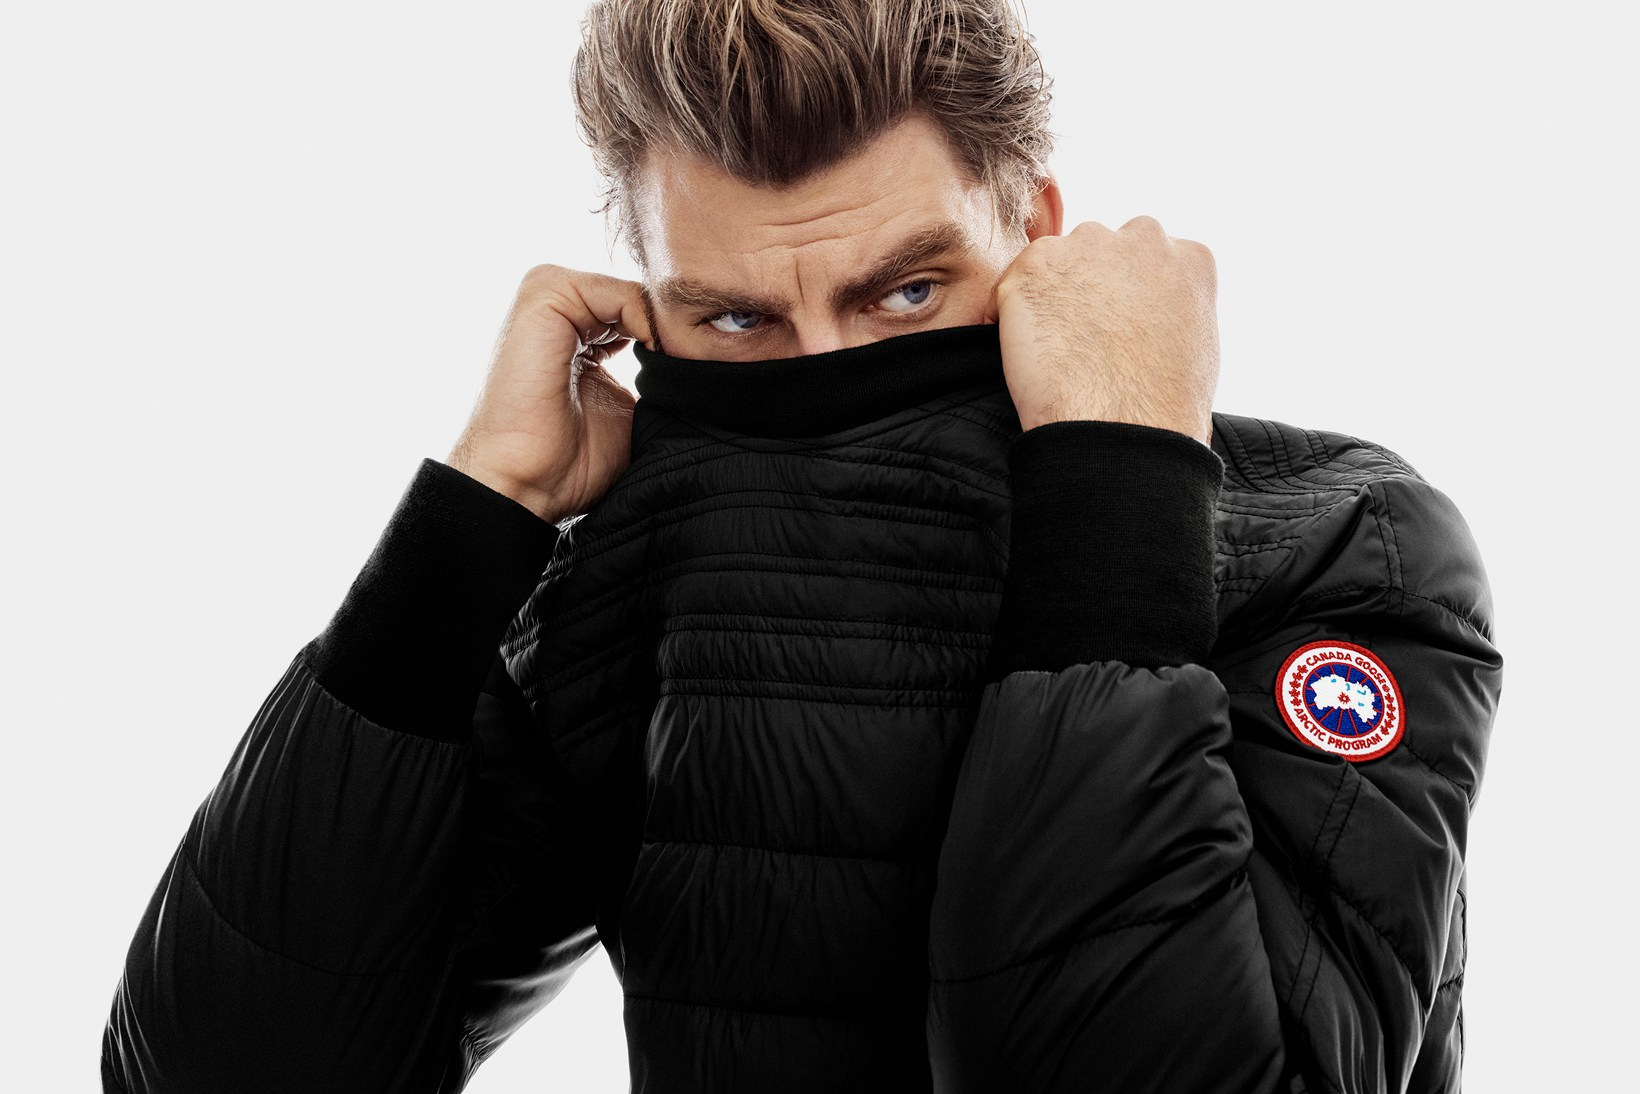 nouvelle collection canada goose